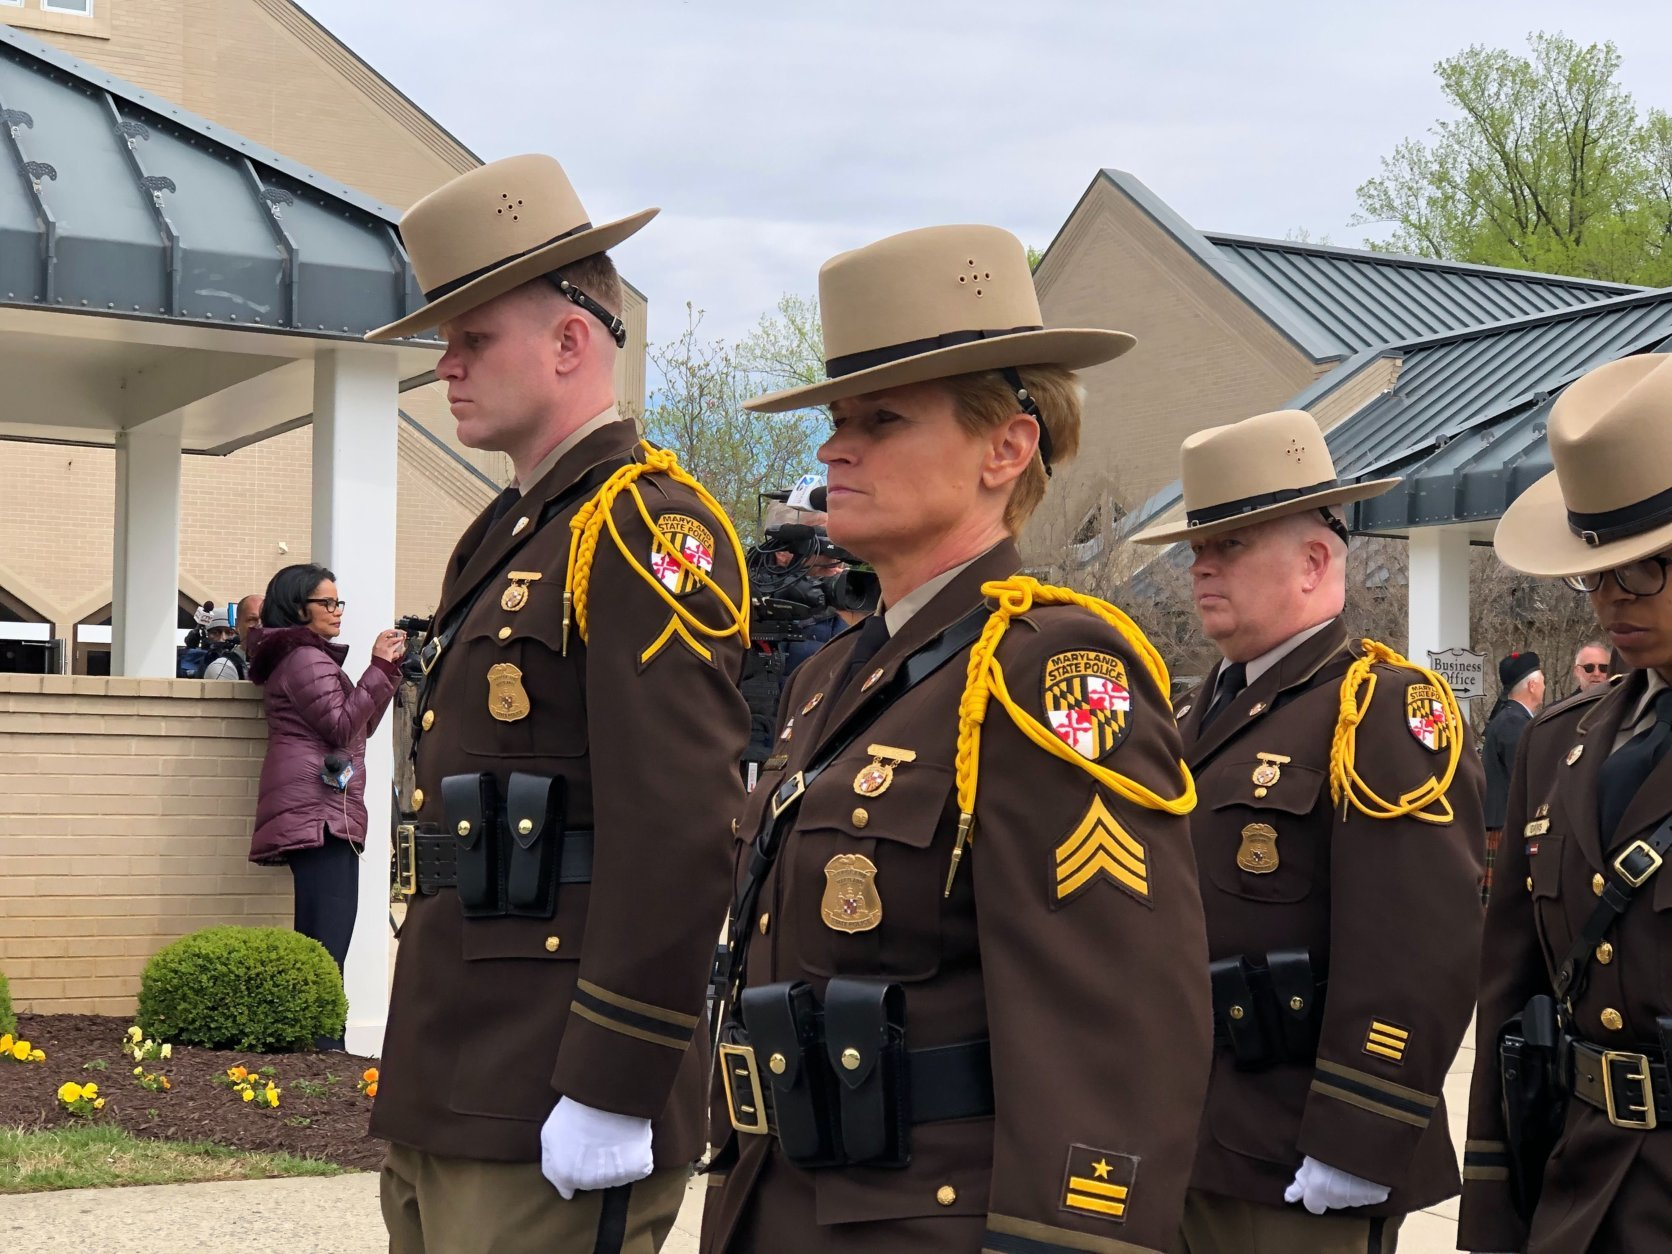 Members of the Maryland State Police Honor Guard at the funeral for House Speaker Michael Busch. (WTOP/Kate Ryan)